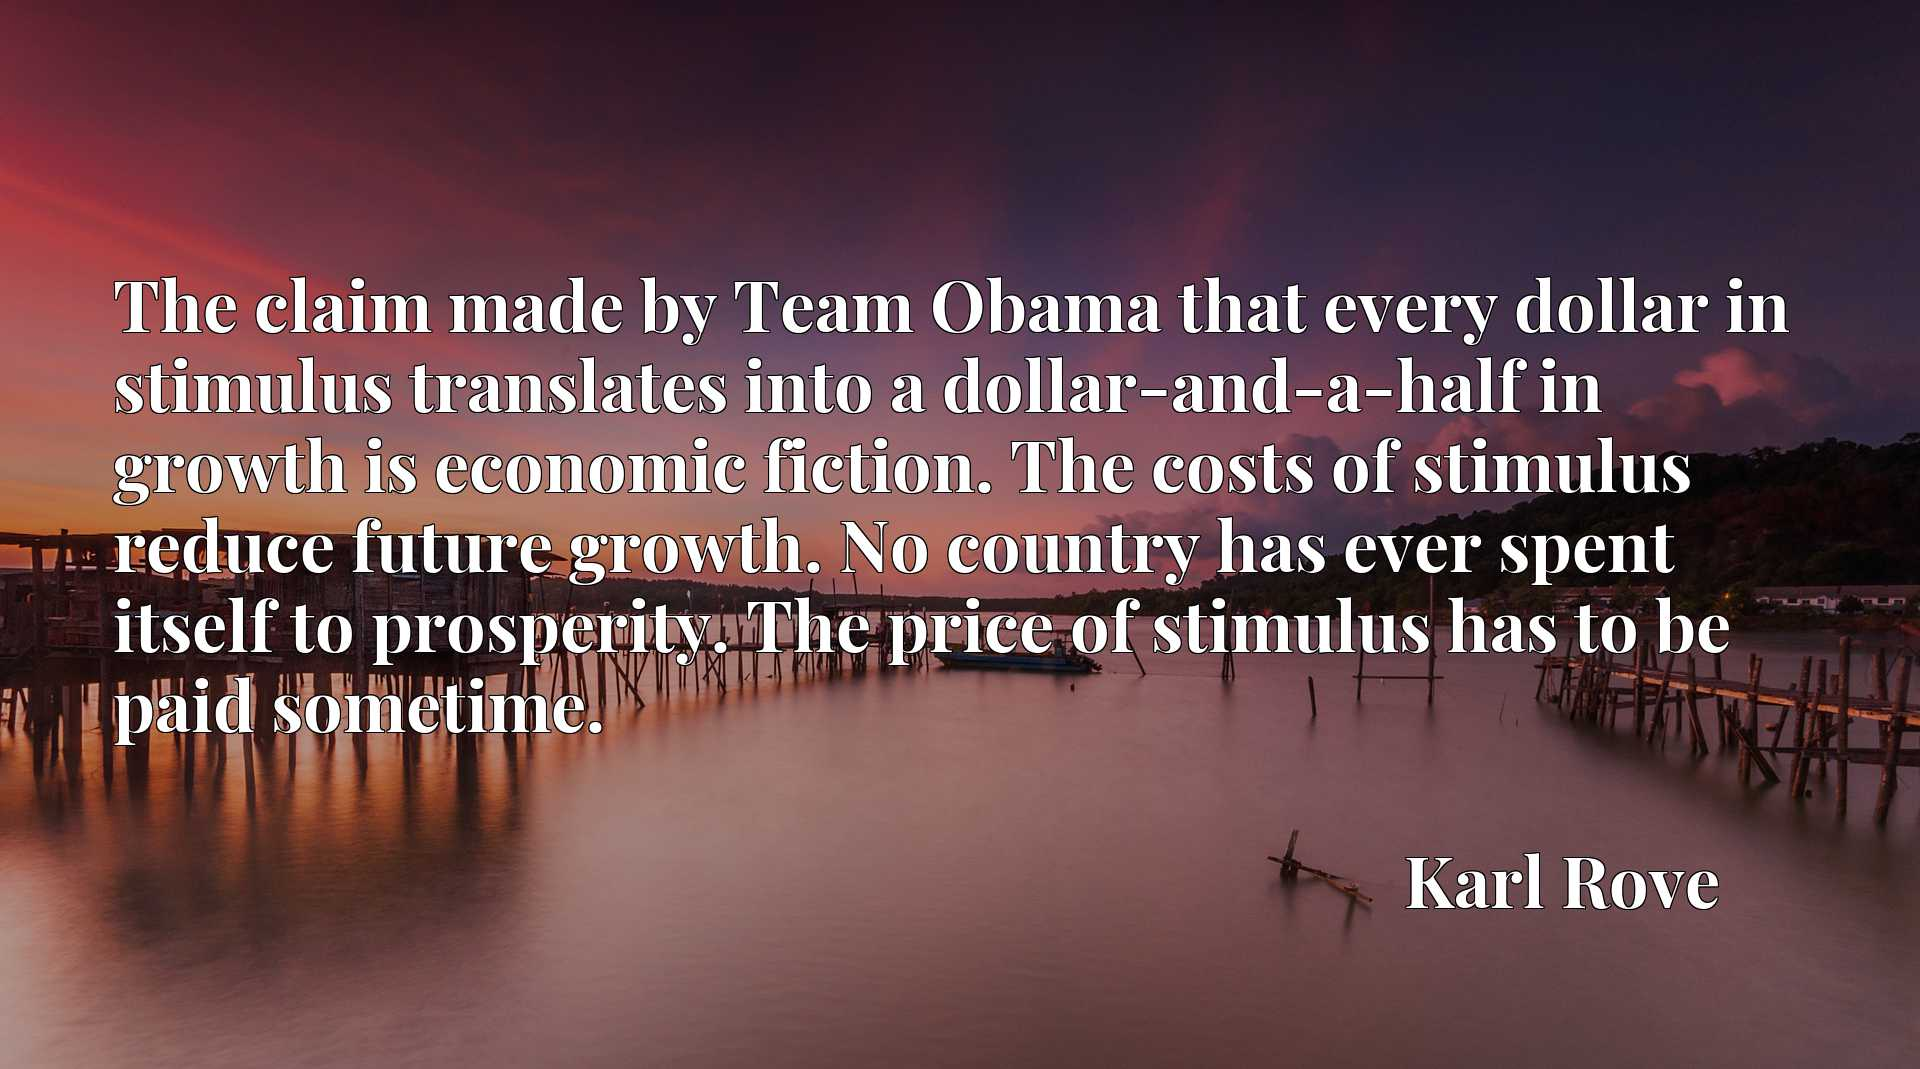 The claim made by Team Obama that every dollar in stimulus translates into a dollar-and-a-half in growth is economic fiction. The costs of stimulus reduce future growth. No country has ever spent itself to prosperity. The price of stimulus has to be paid sometime.